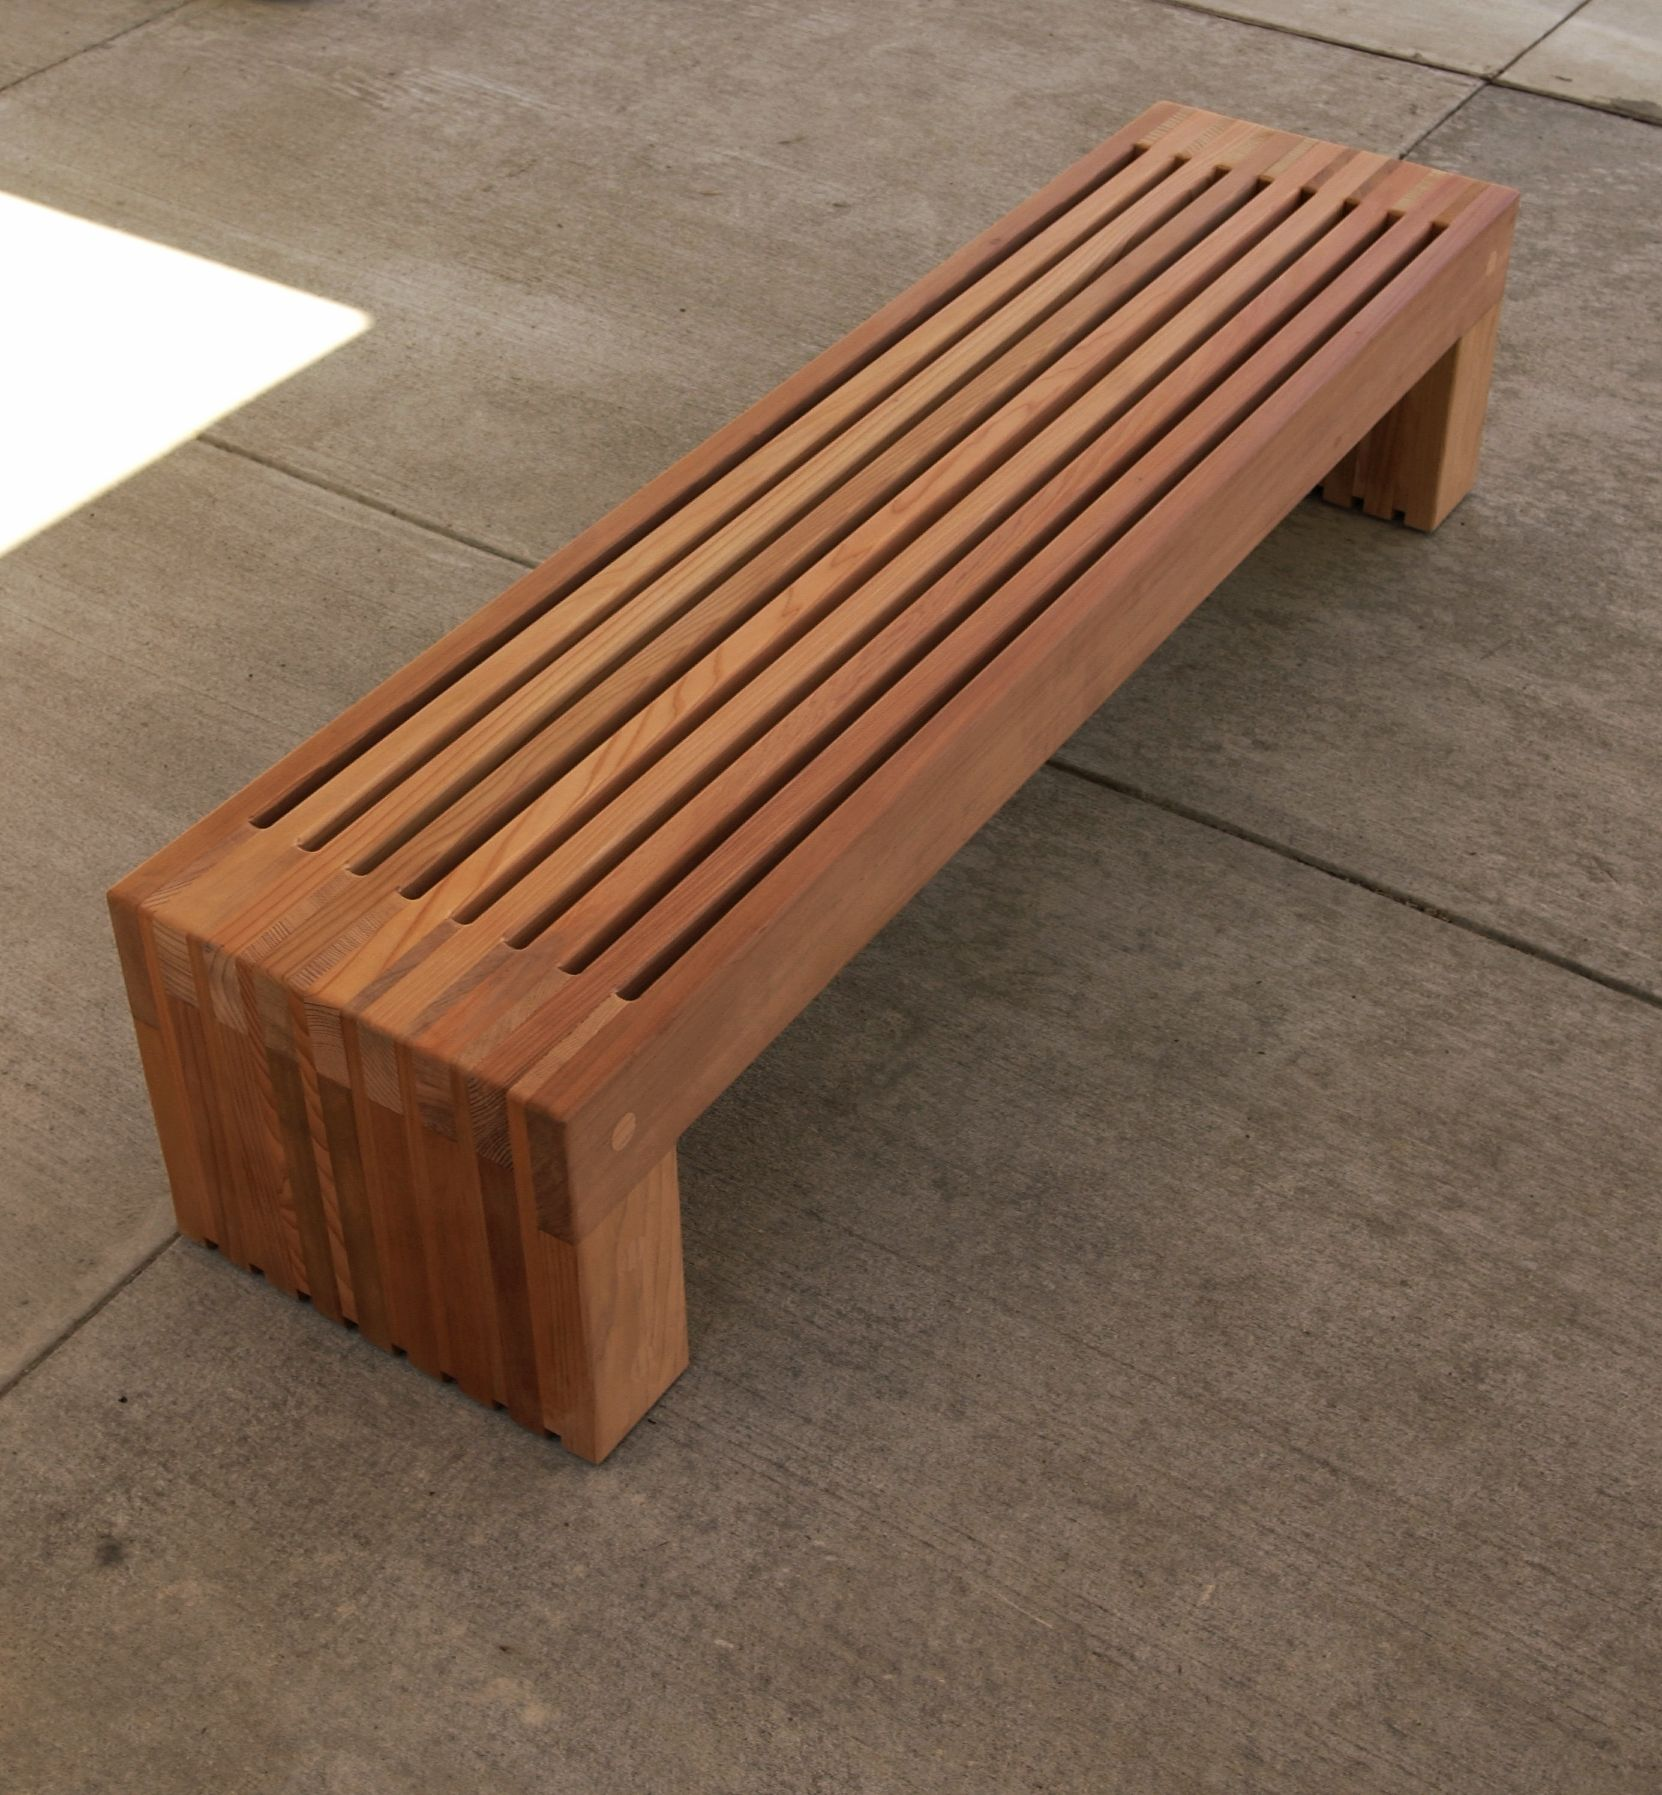 DIY Redwood Bench Design PDF Download ultimate computer desk plans